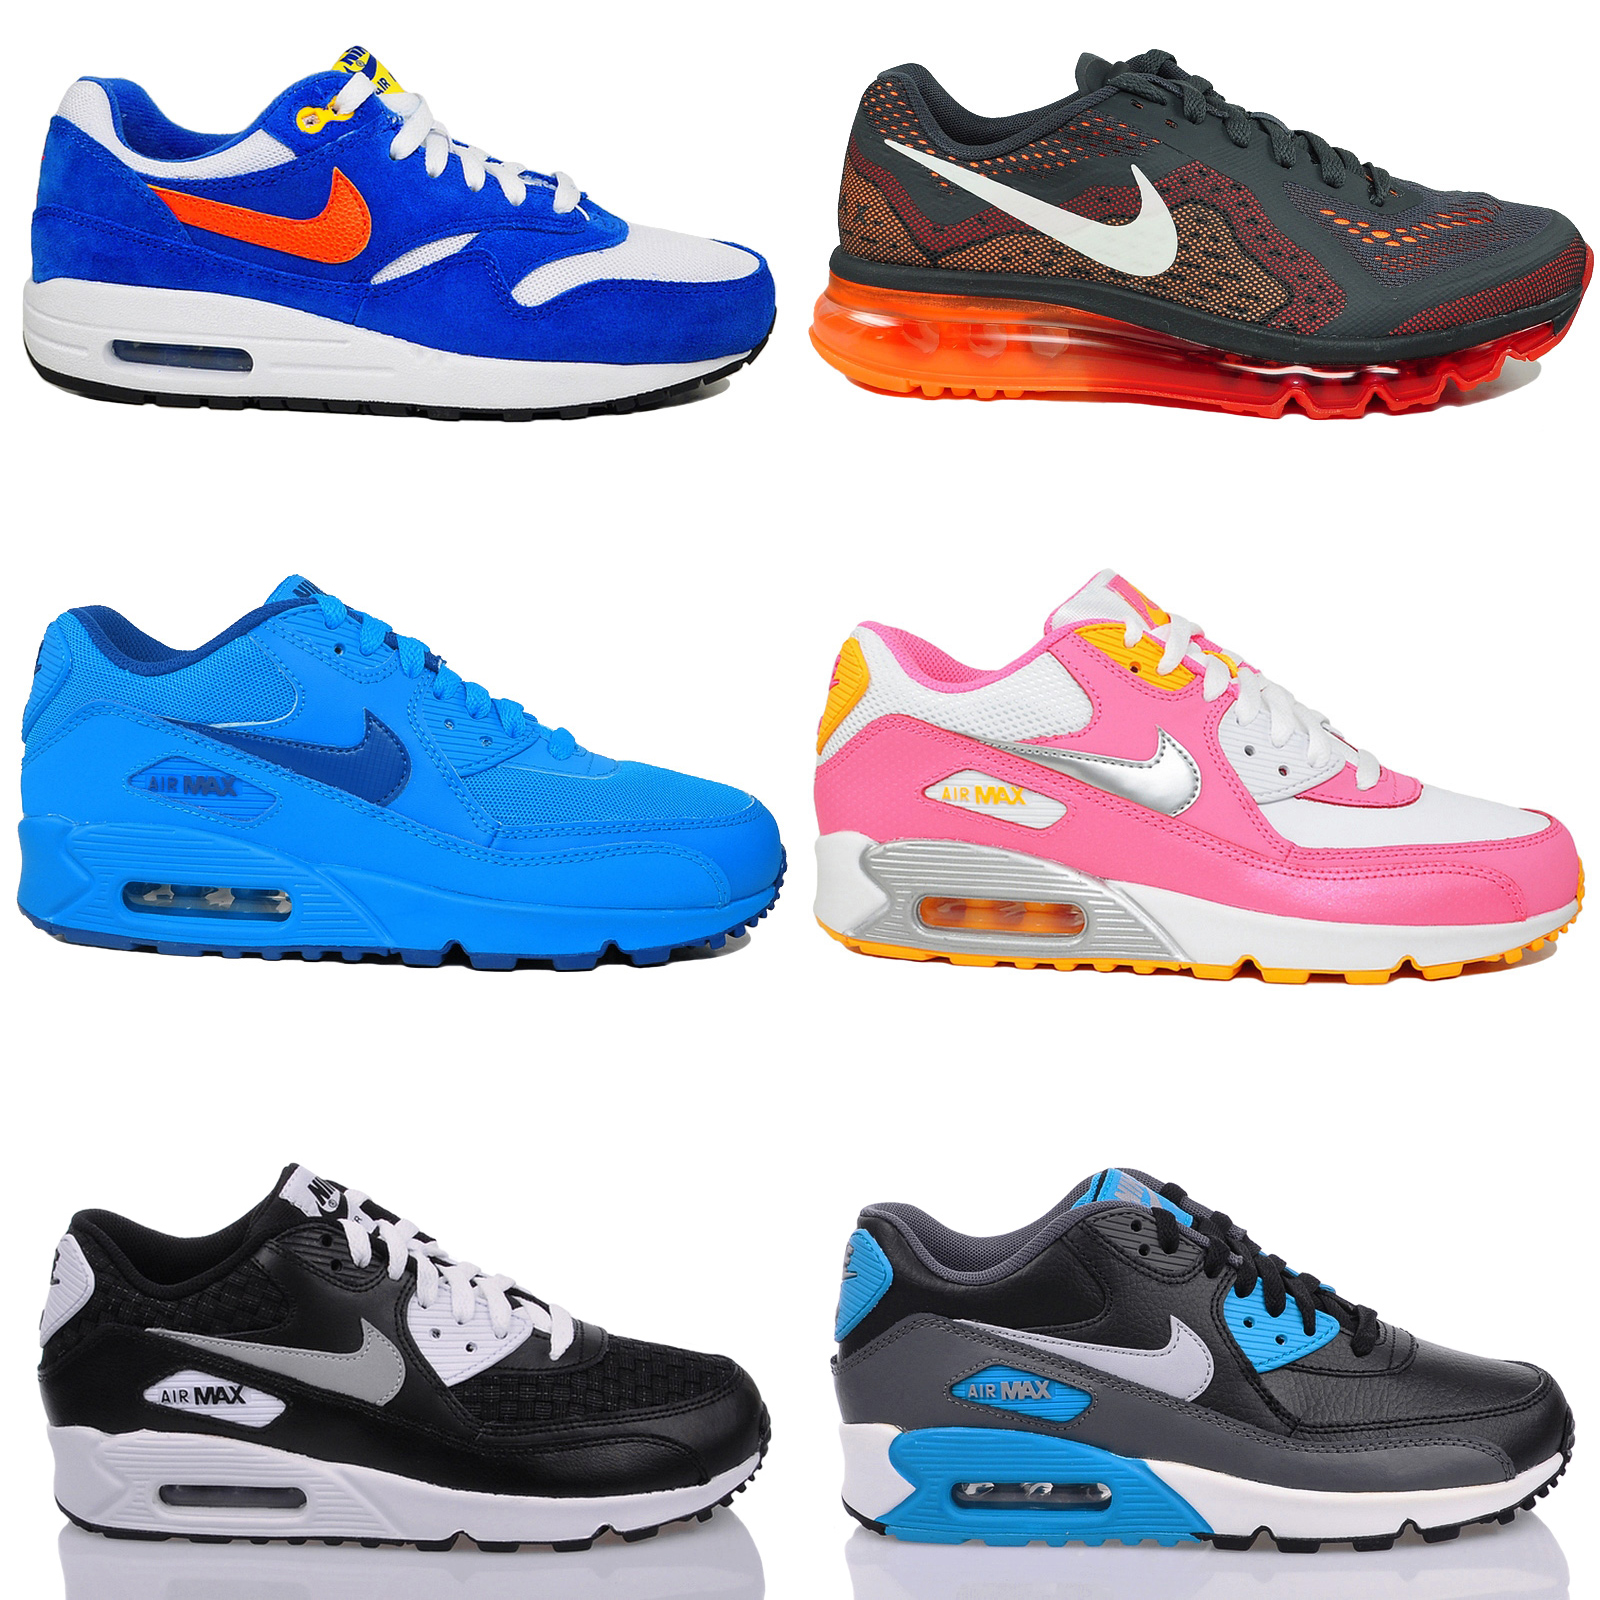 neu nike air max 90 gs sneaker sportschuhe damen. Black Bedroom Furniture Sets. Home Design Ideas